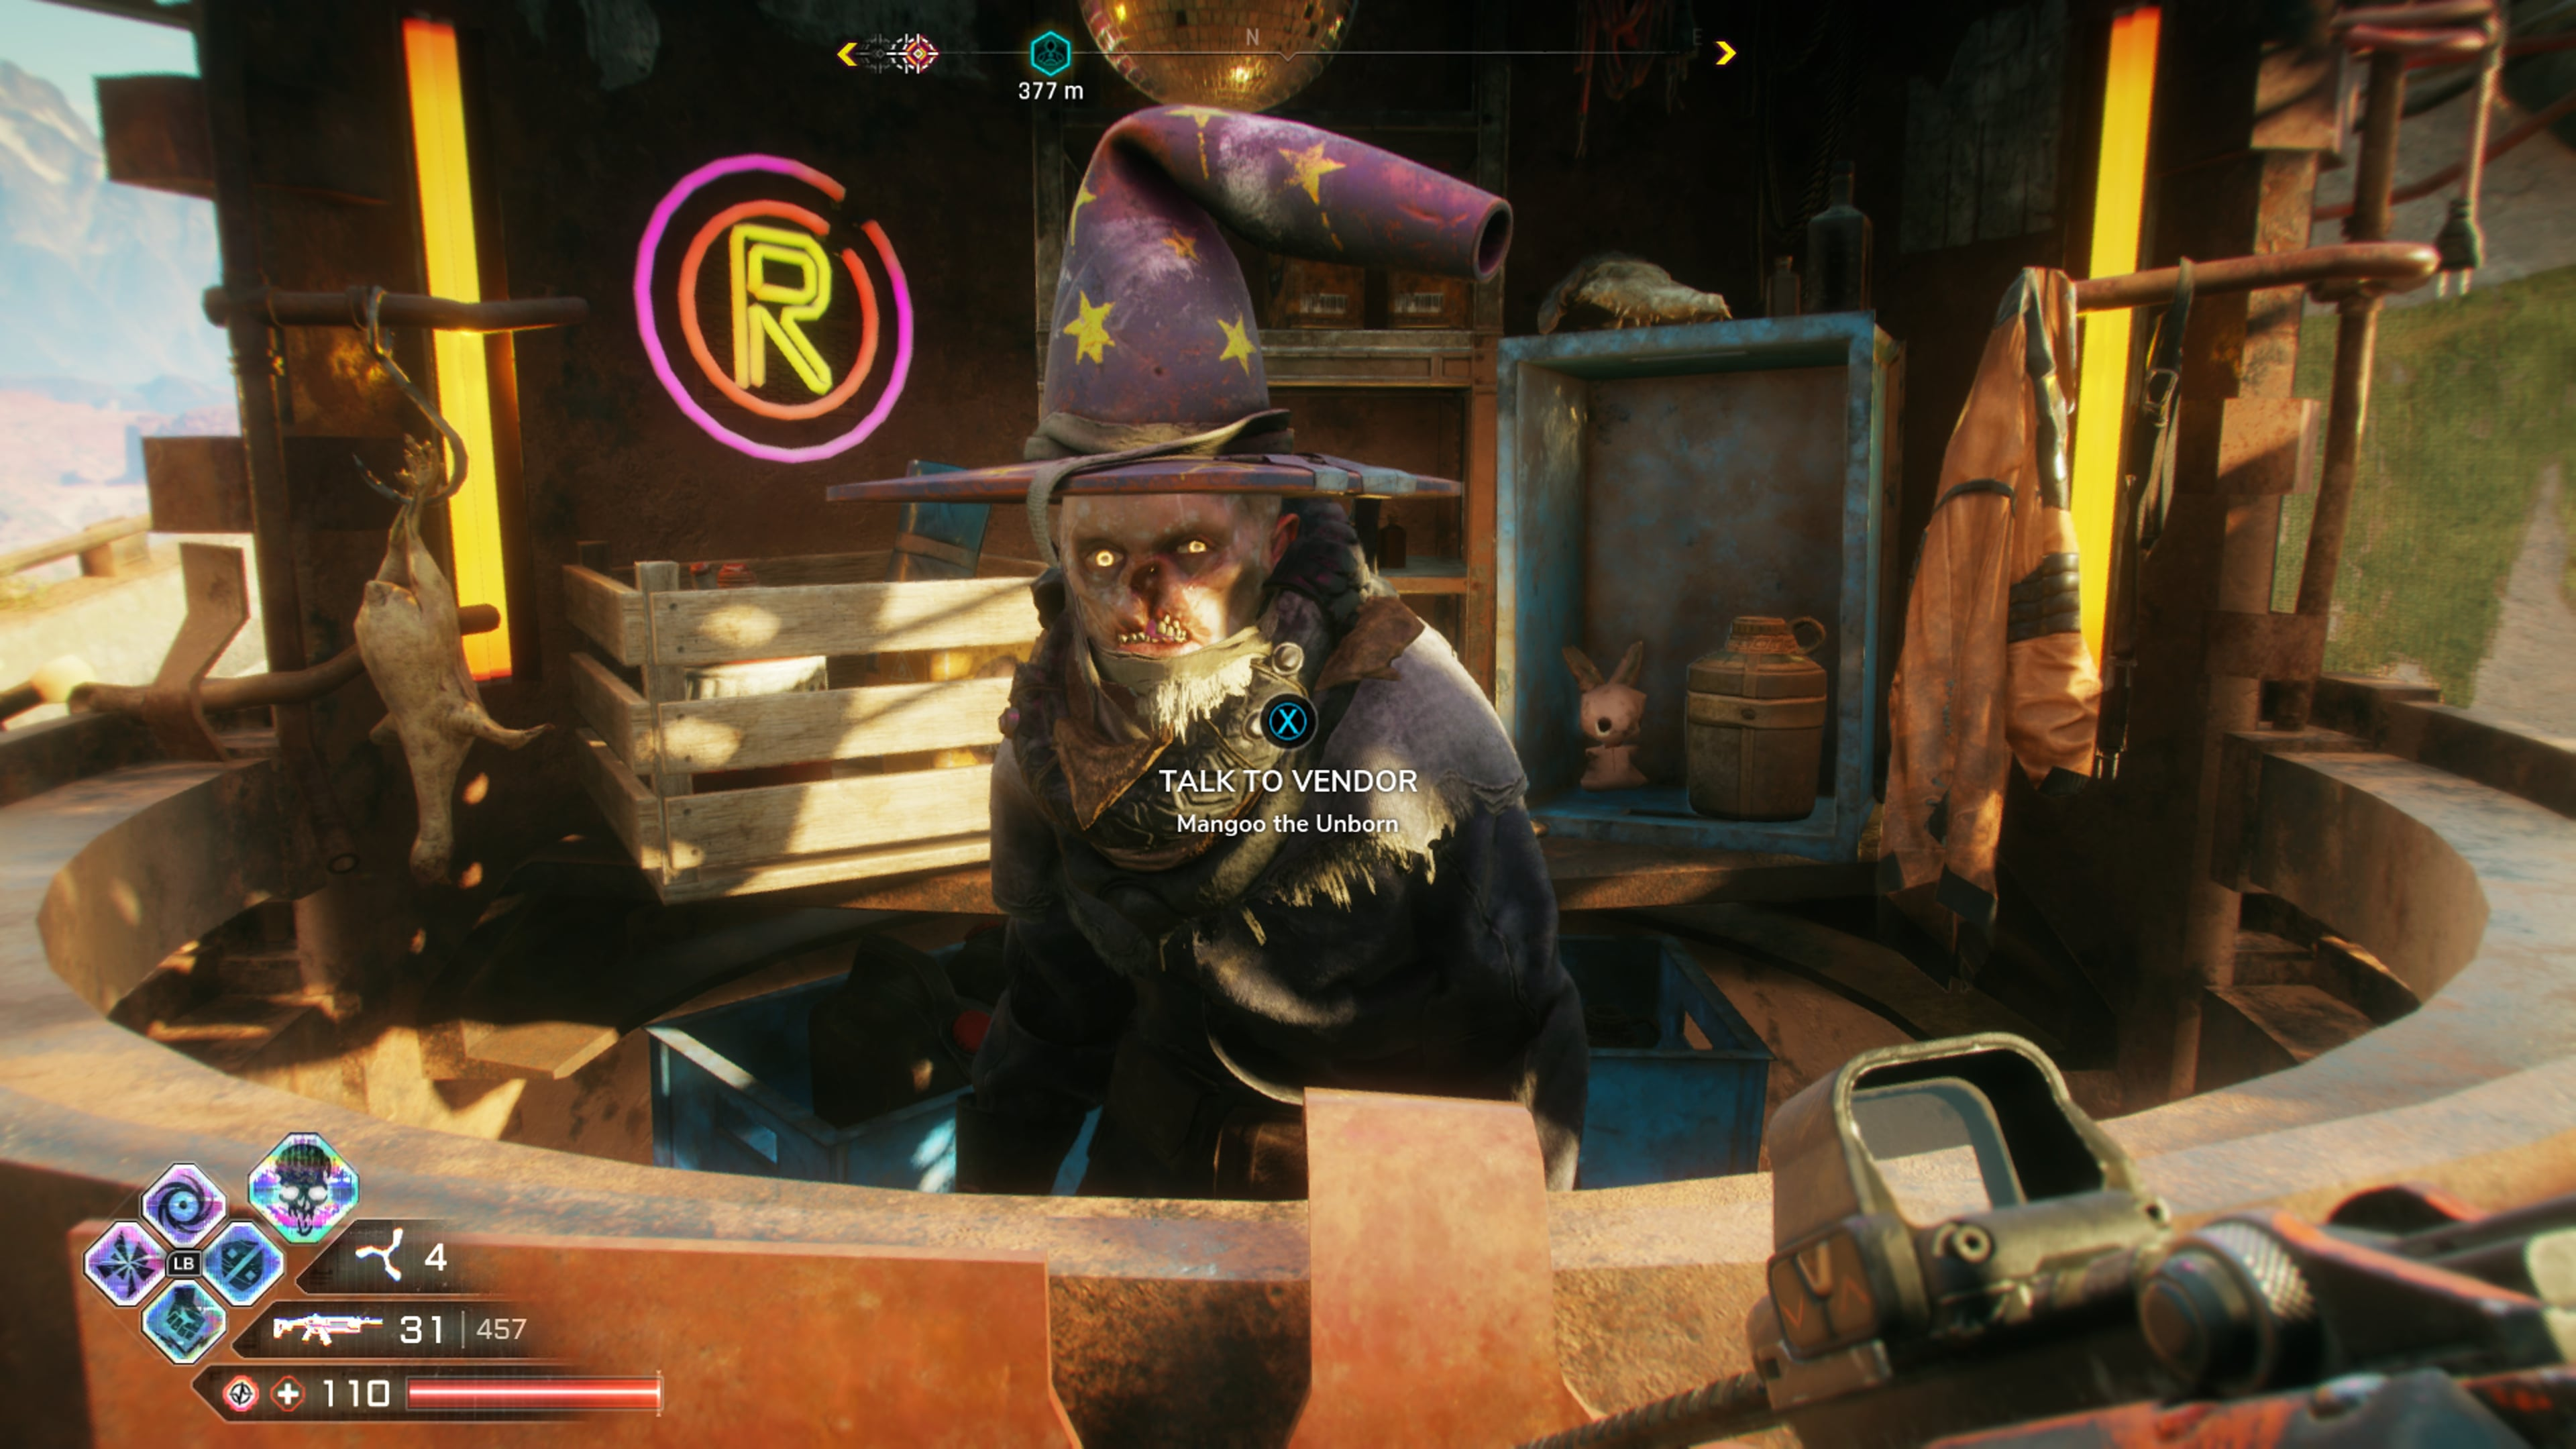 Cheat codes can be purchased from Mangoo, a vendor known as the Wasteland Wizard in Rage 2.